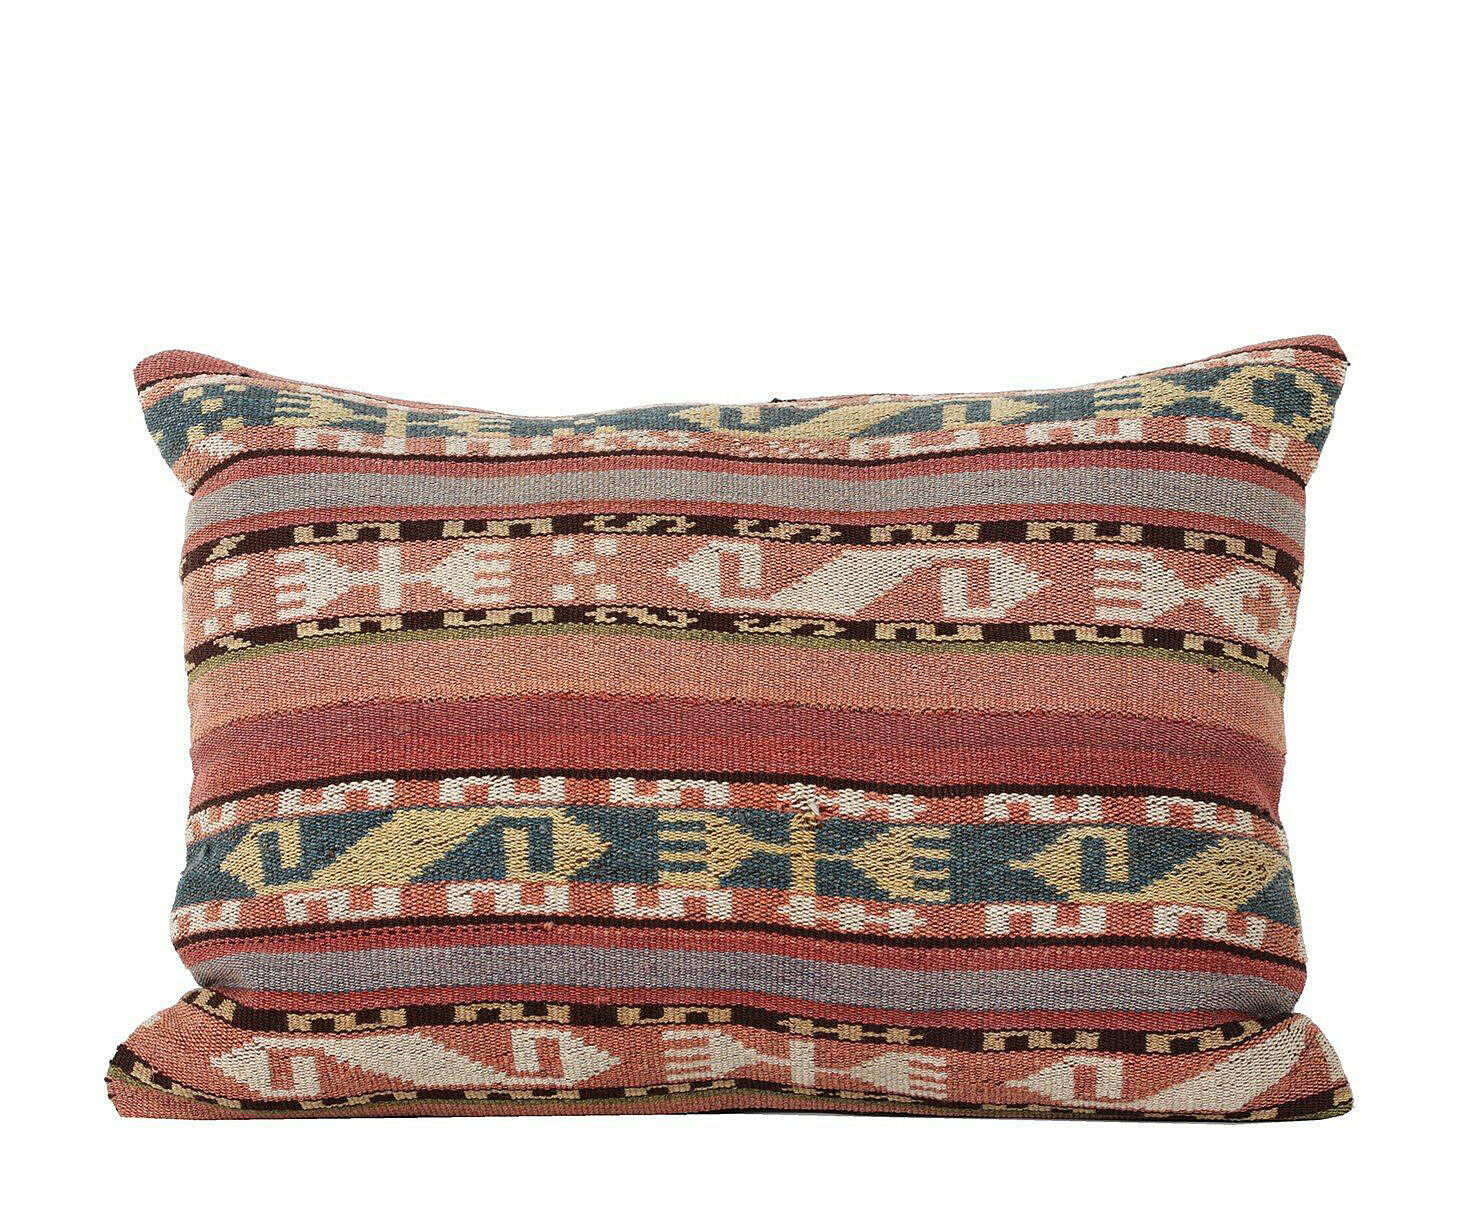 16.14  x 22.44  Pillow Cover Kilim Pillow OLD FAST Shipment With UPS 05539